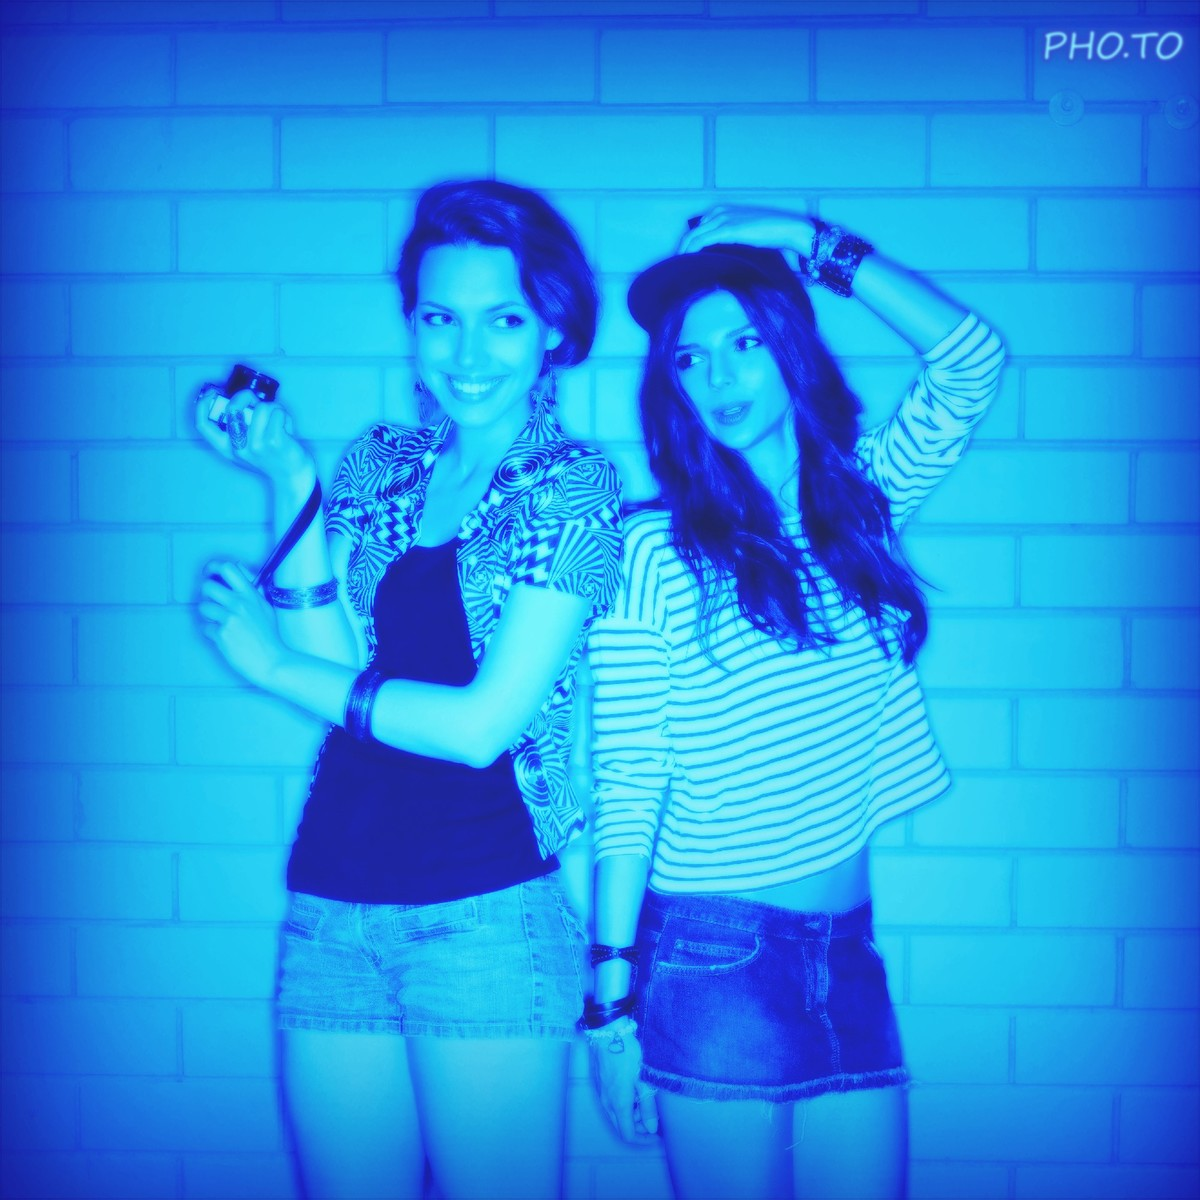 A blue lighting photo effect which imitates the disco lighting from underground parties